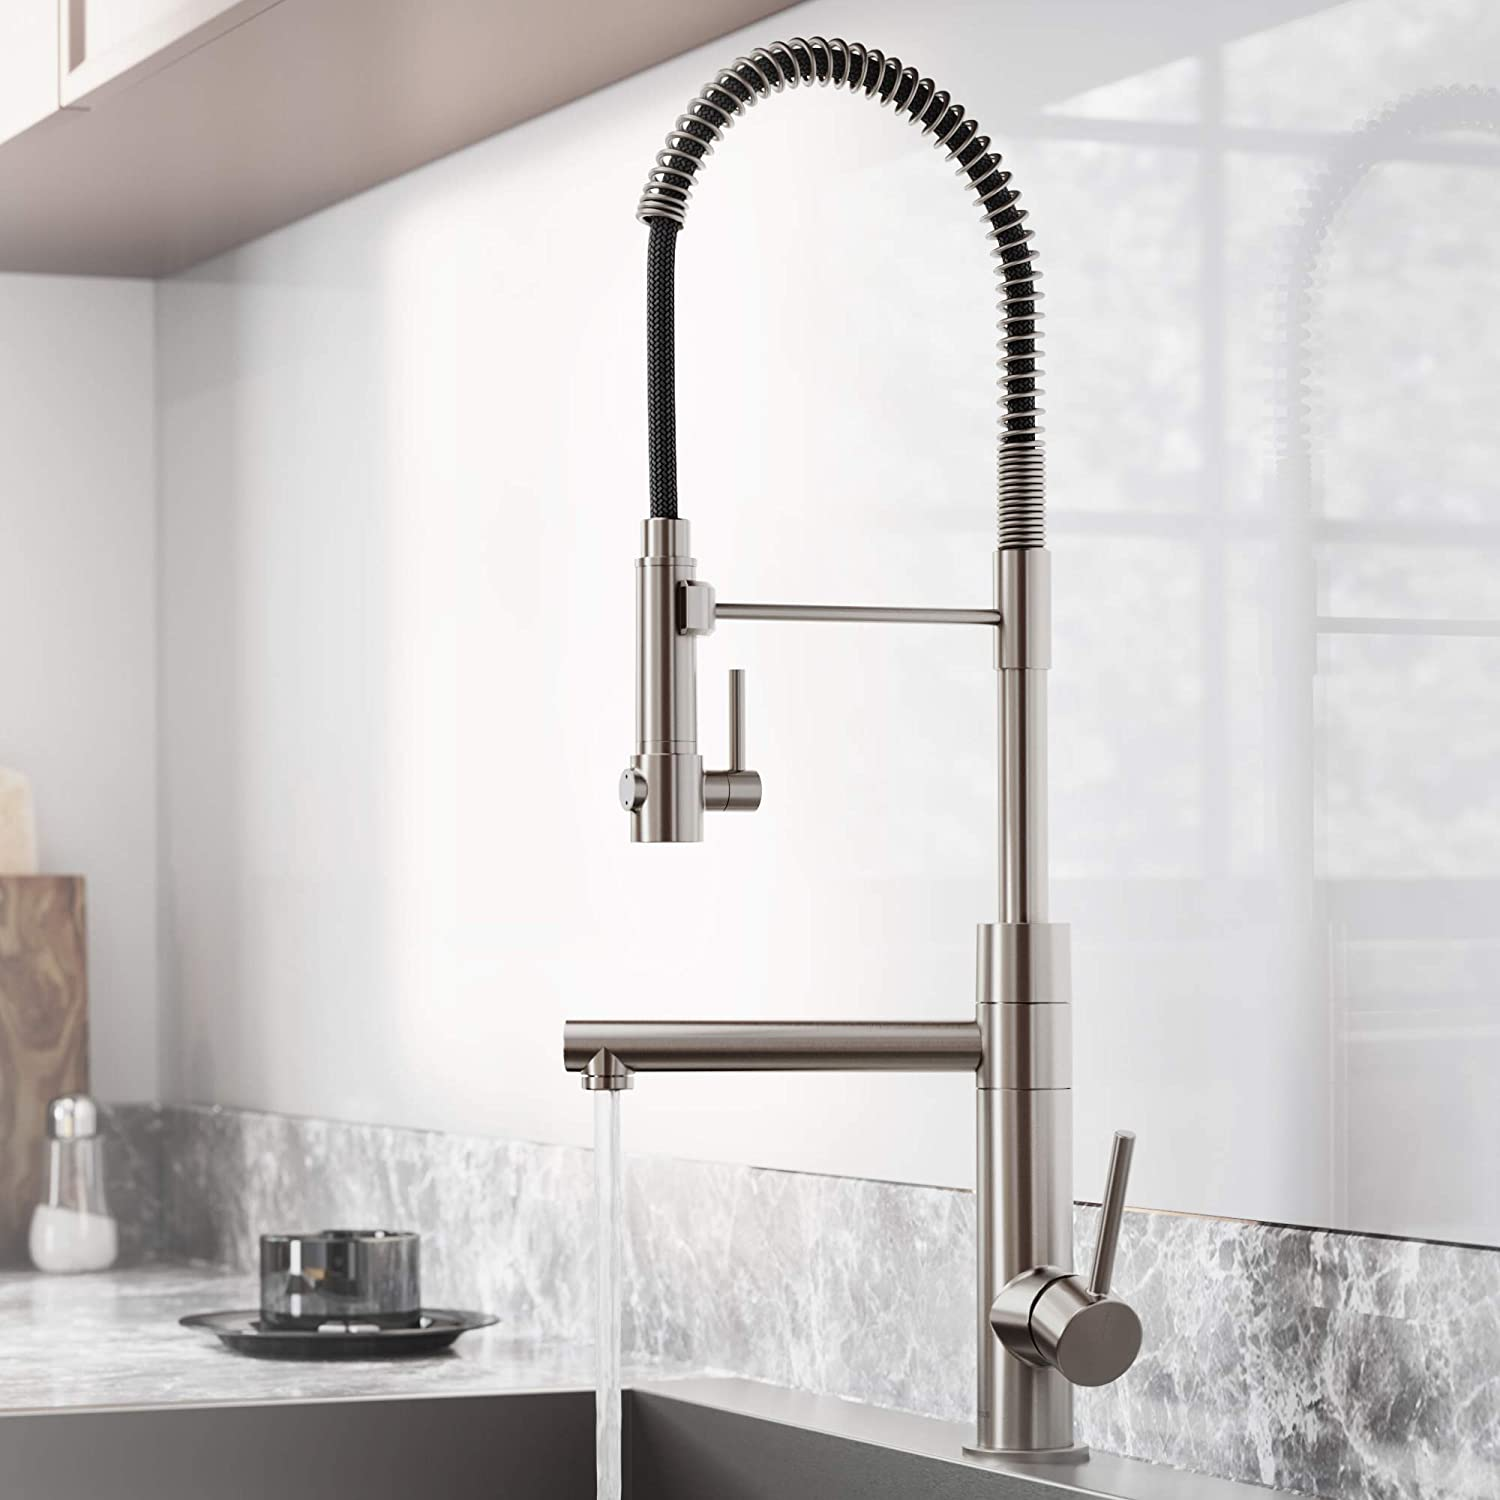 Kraus KPF-1603SFS Atrec Pro Spot Free Stainless Steel Finish 2-Function Commercial Style Pre-Rinse Kitchen Faucet with Pull-Down Spring Spout and Pot Filler 24.75 Inch